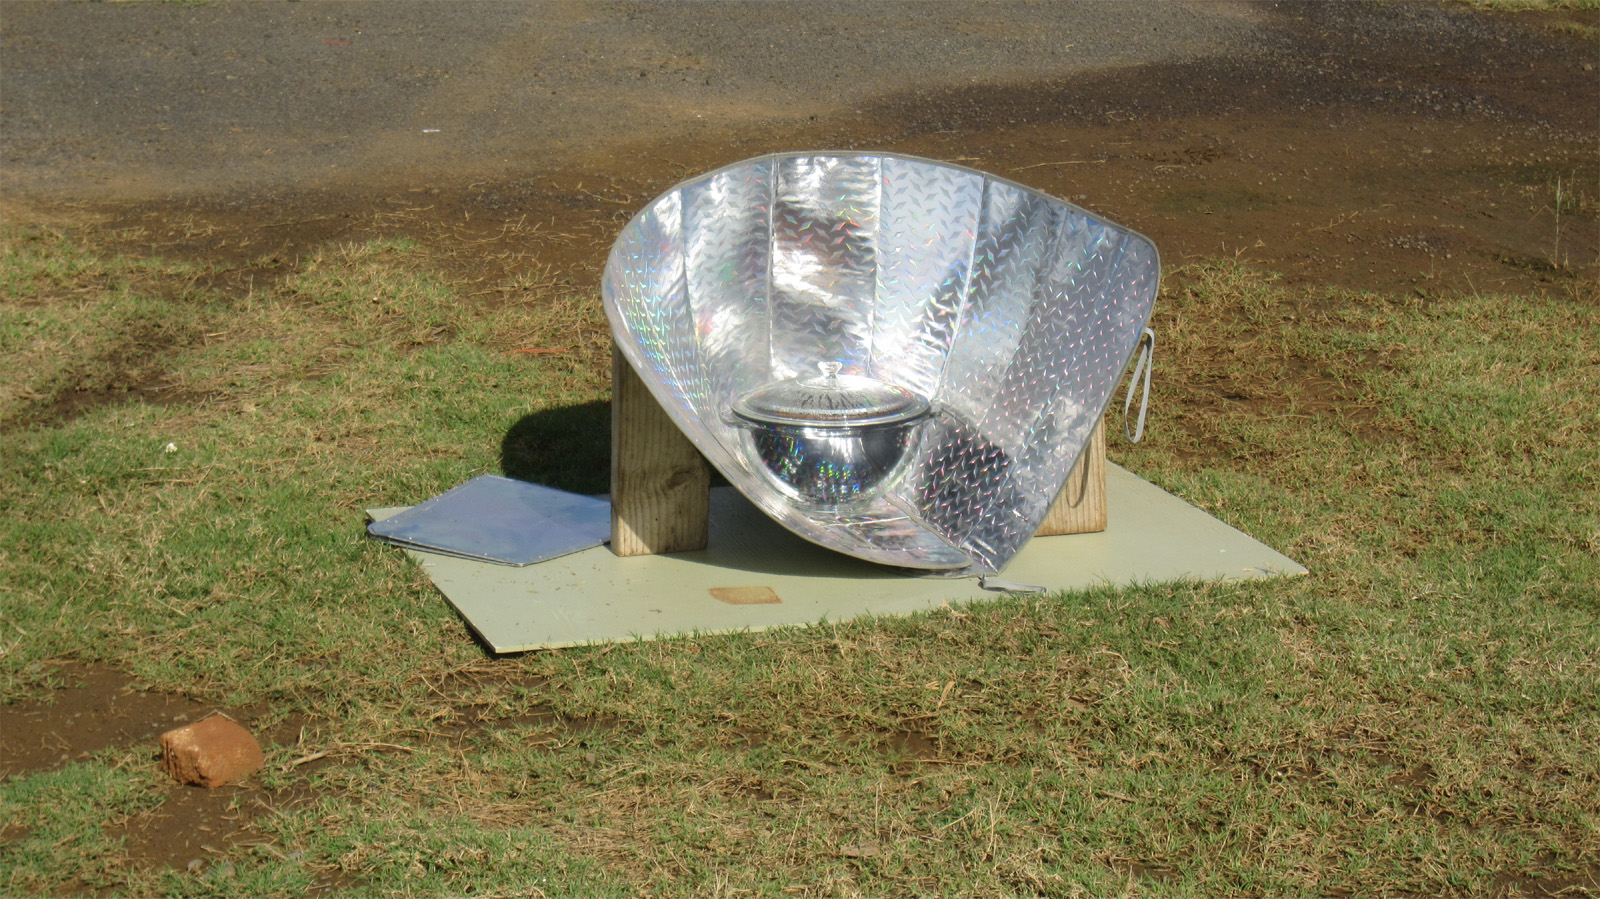 Solar ovens are a trend or fad